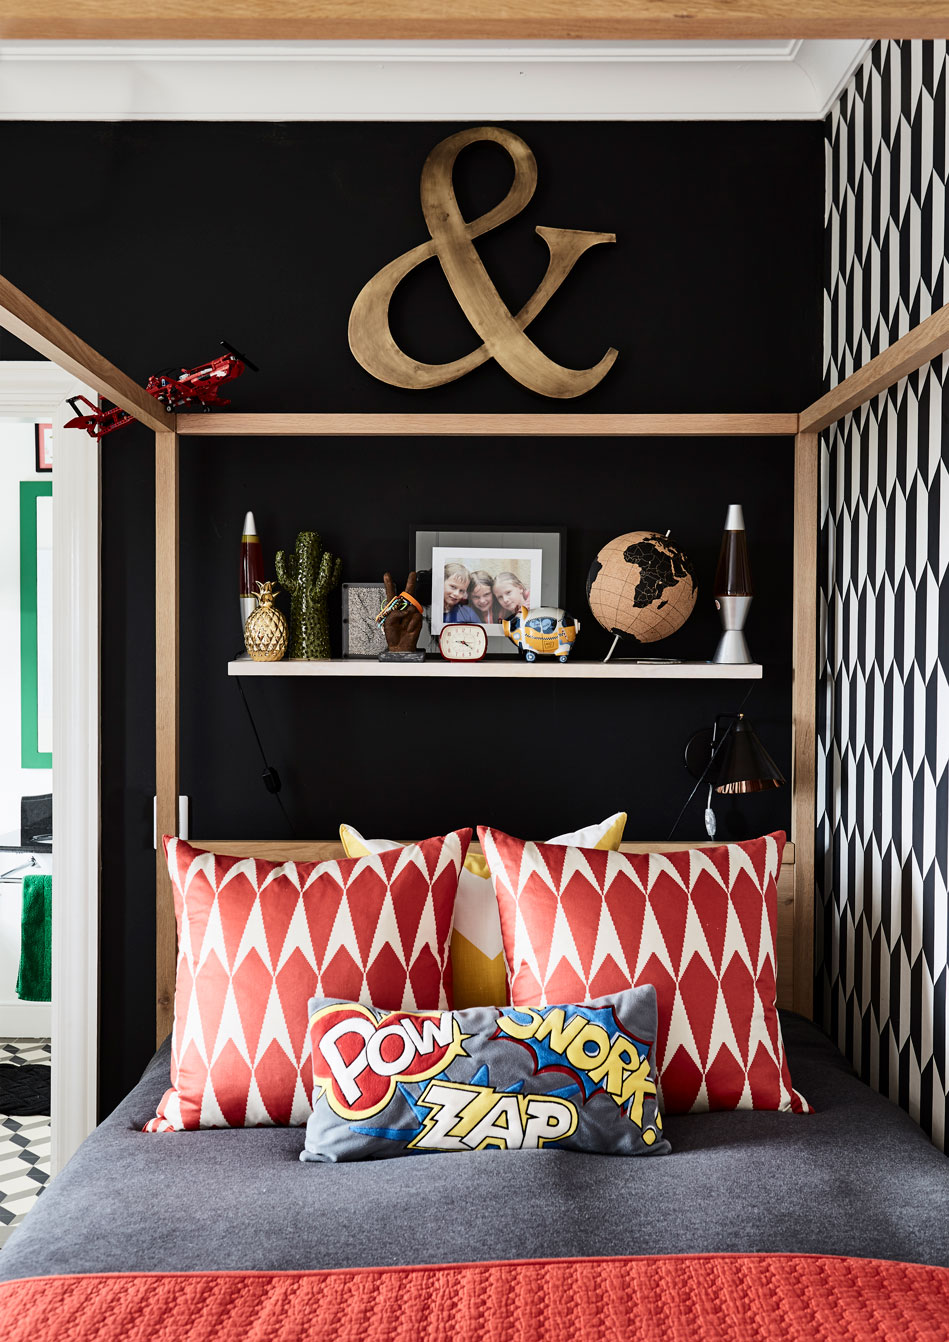 In Kim's son Jamie's room, the decor is bold and graphic with lots of black and white, punctuated by bright red accents including these scatter cushions.